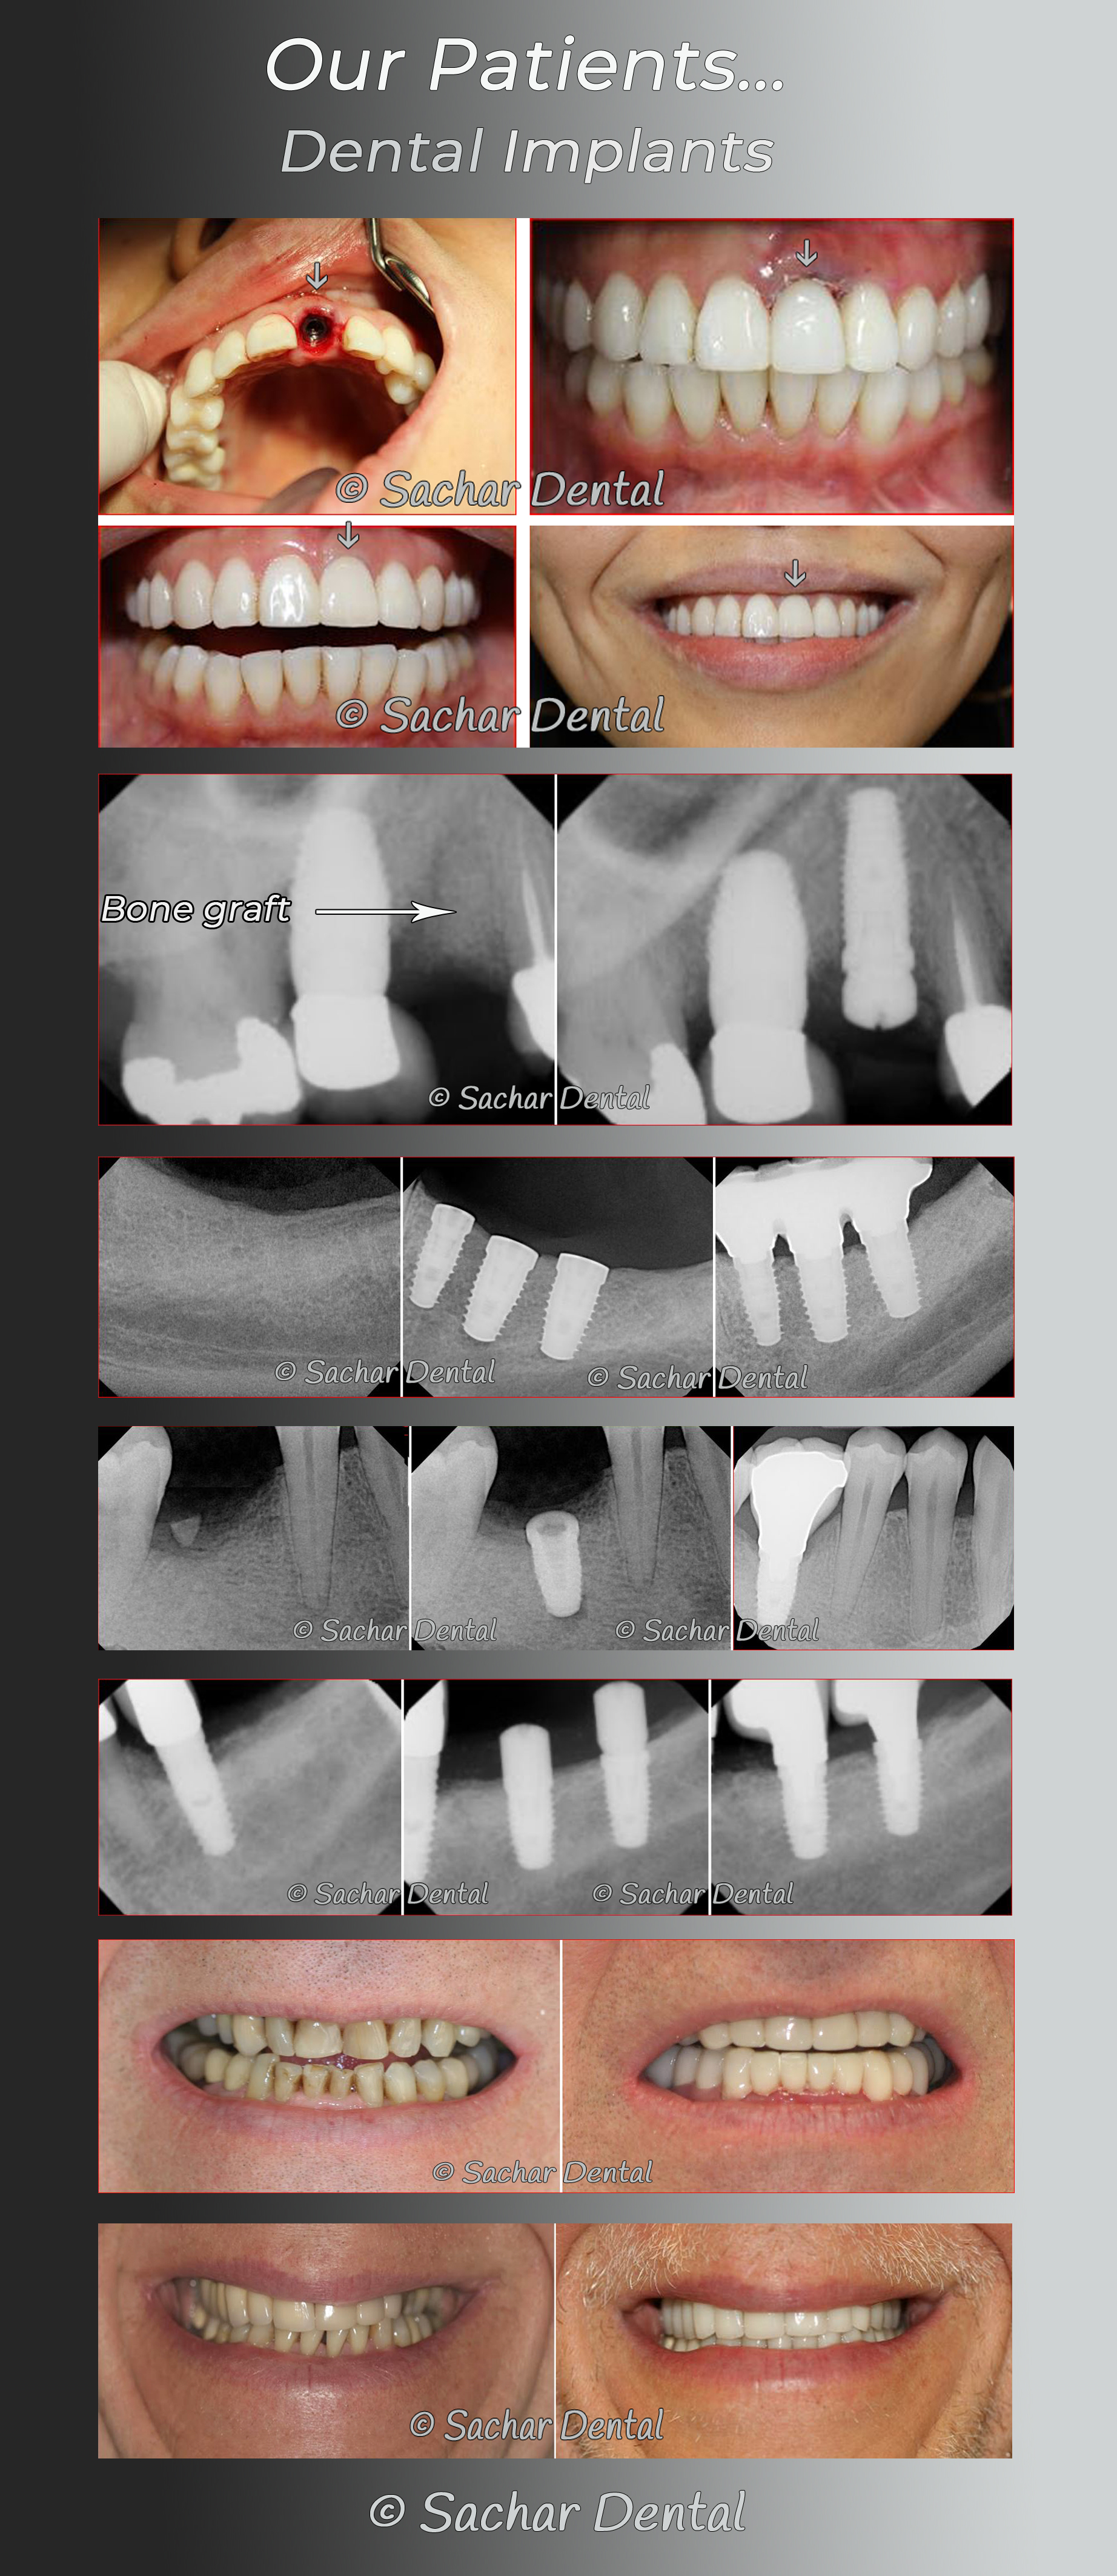 Picture of our patients before and after dental implants 7 different patients